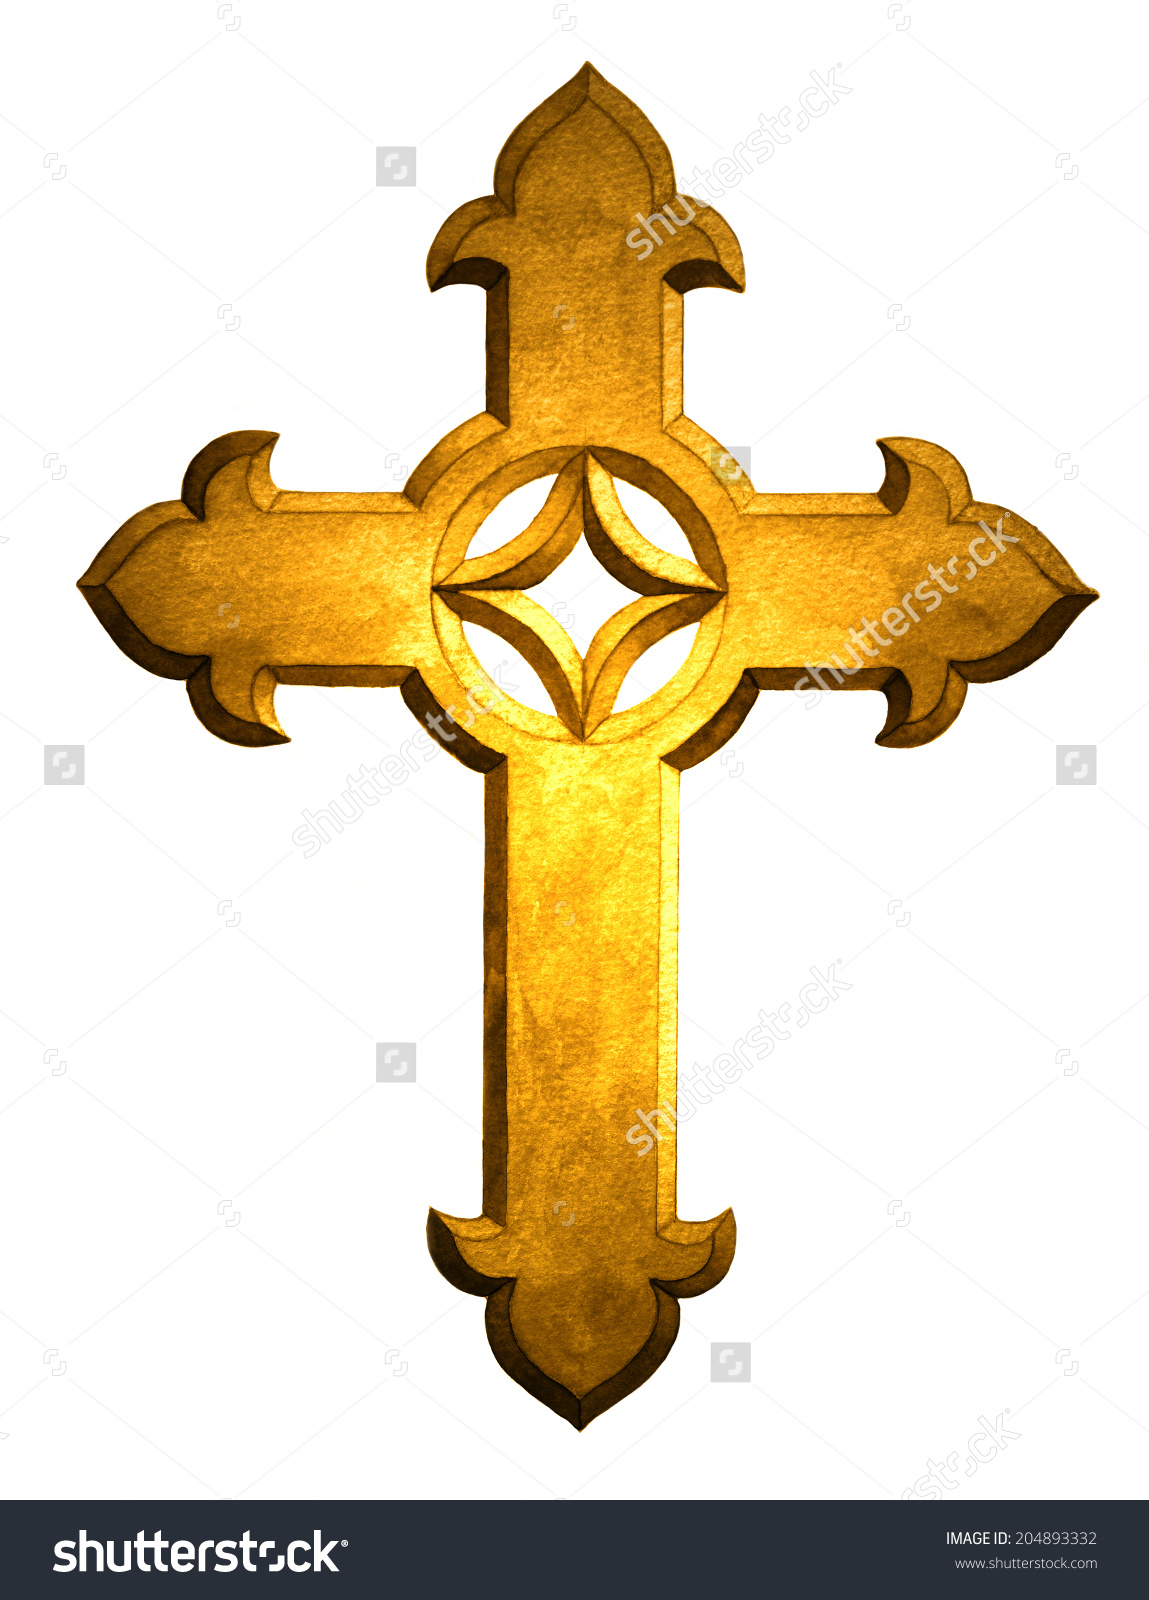 Metal cross clipart - Clipground